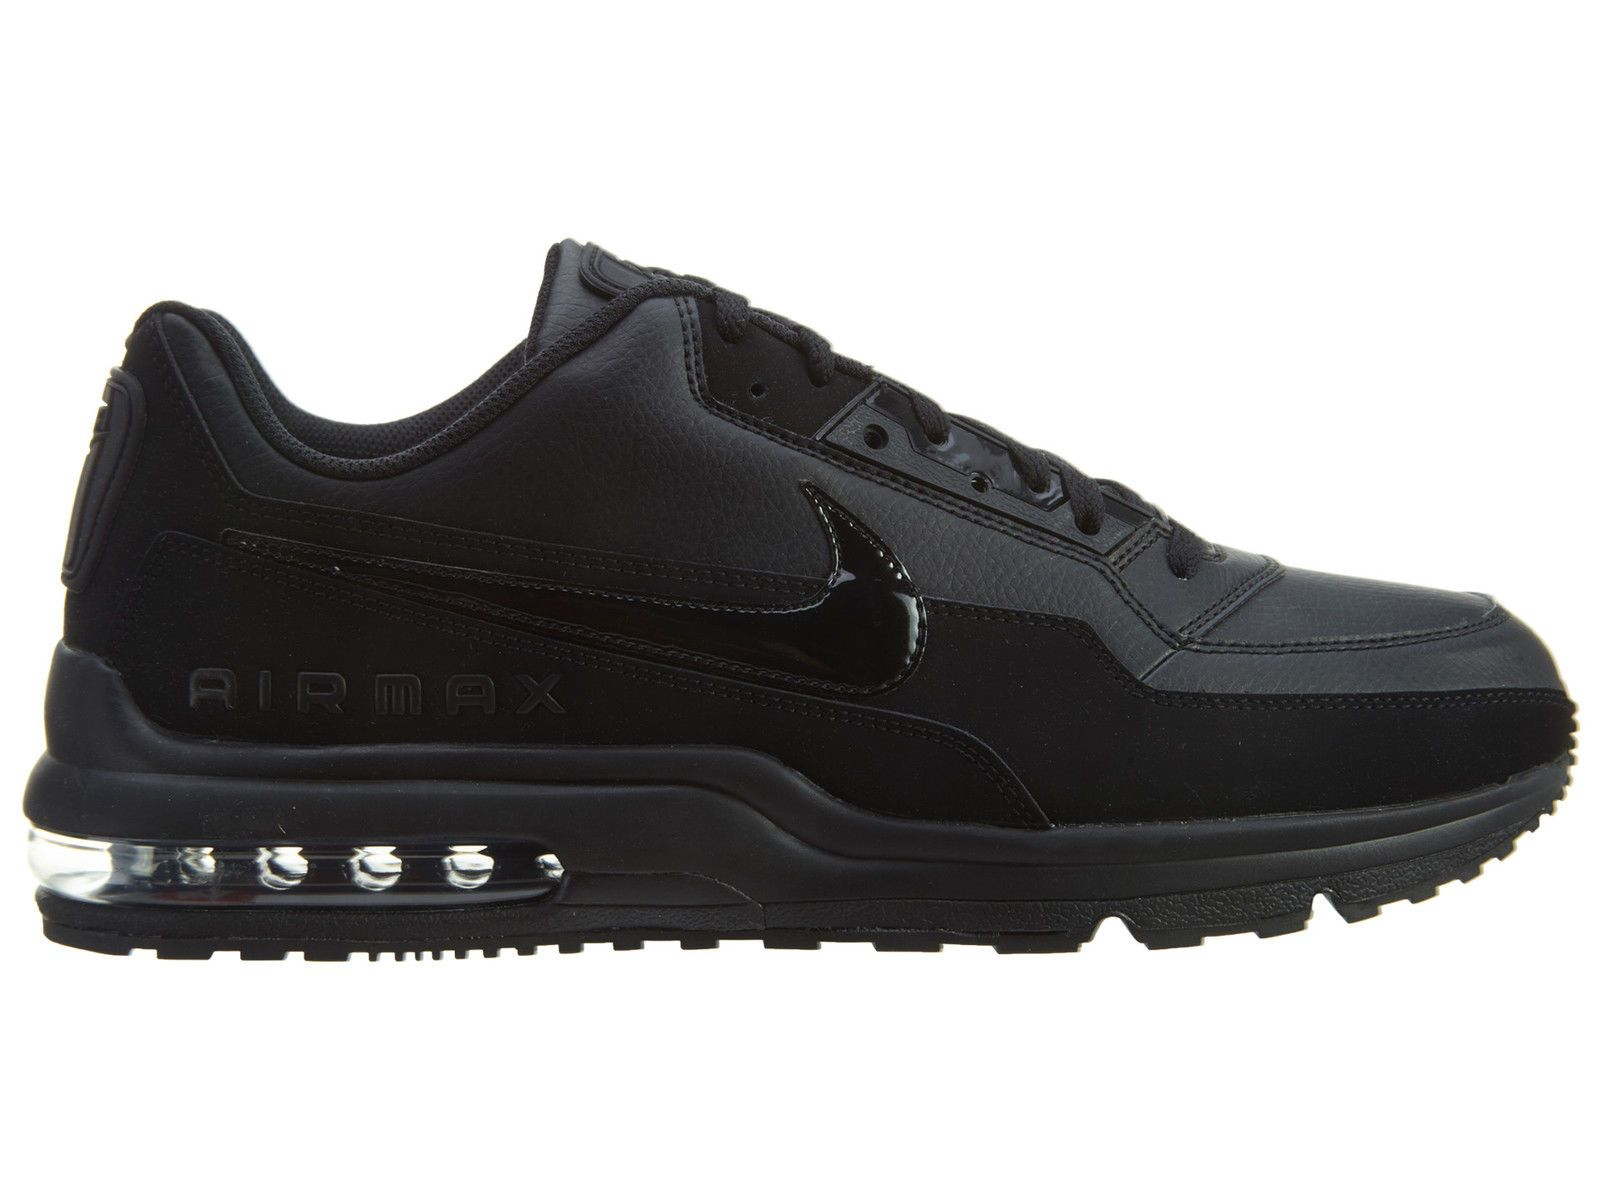 1472488ec92d Nike Air Max LTD 3 Mens 687977-020 Black Leather Athletic Running Shoes  Size 9